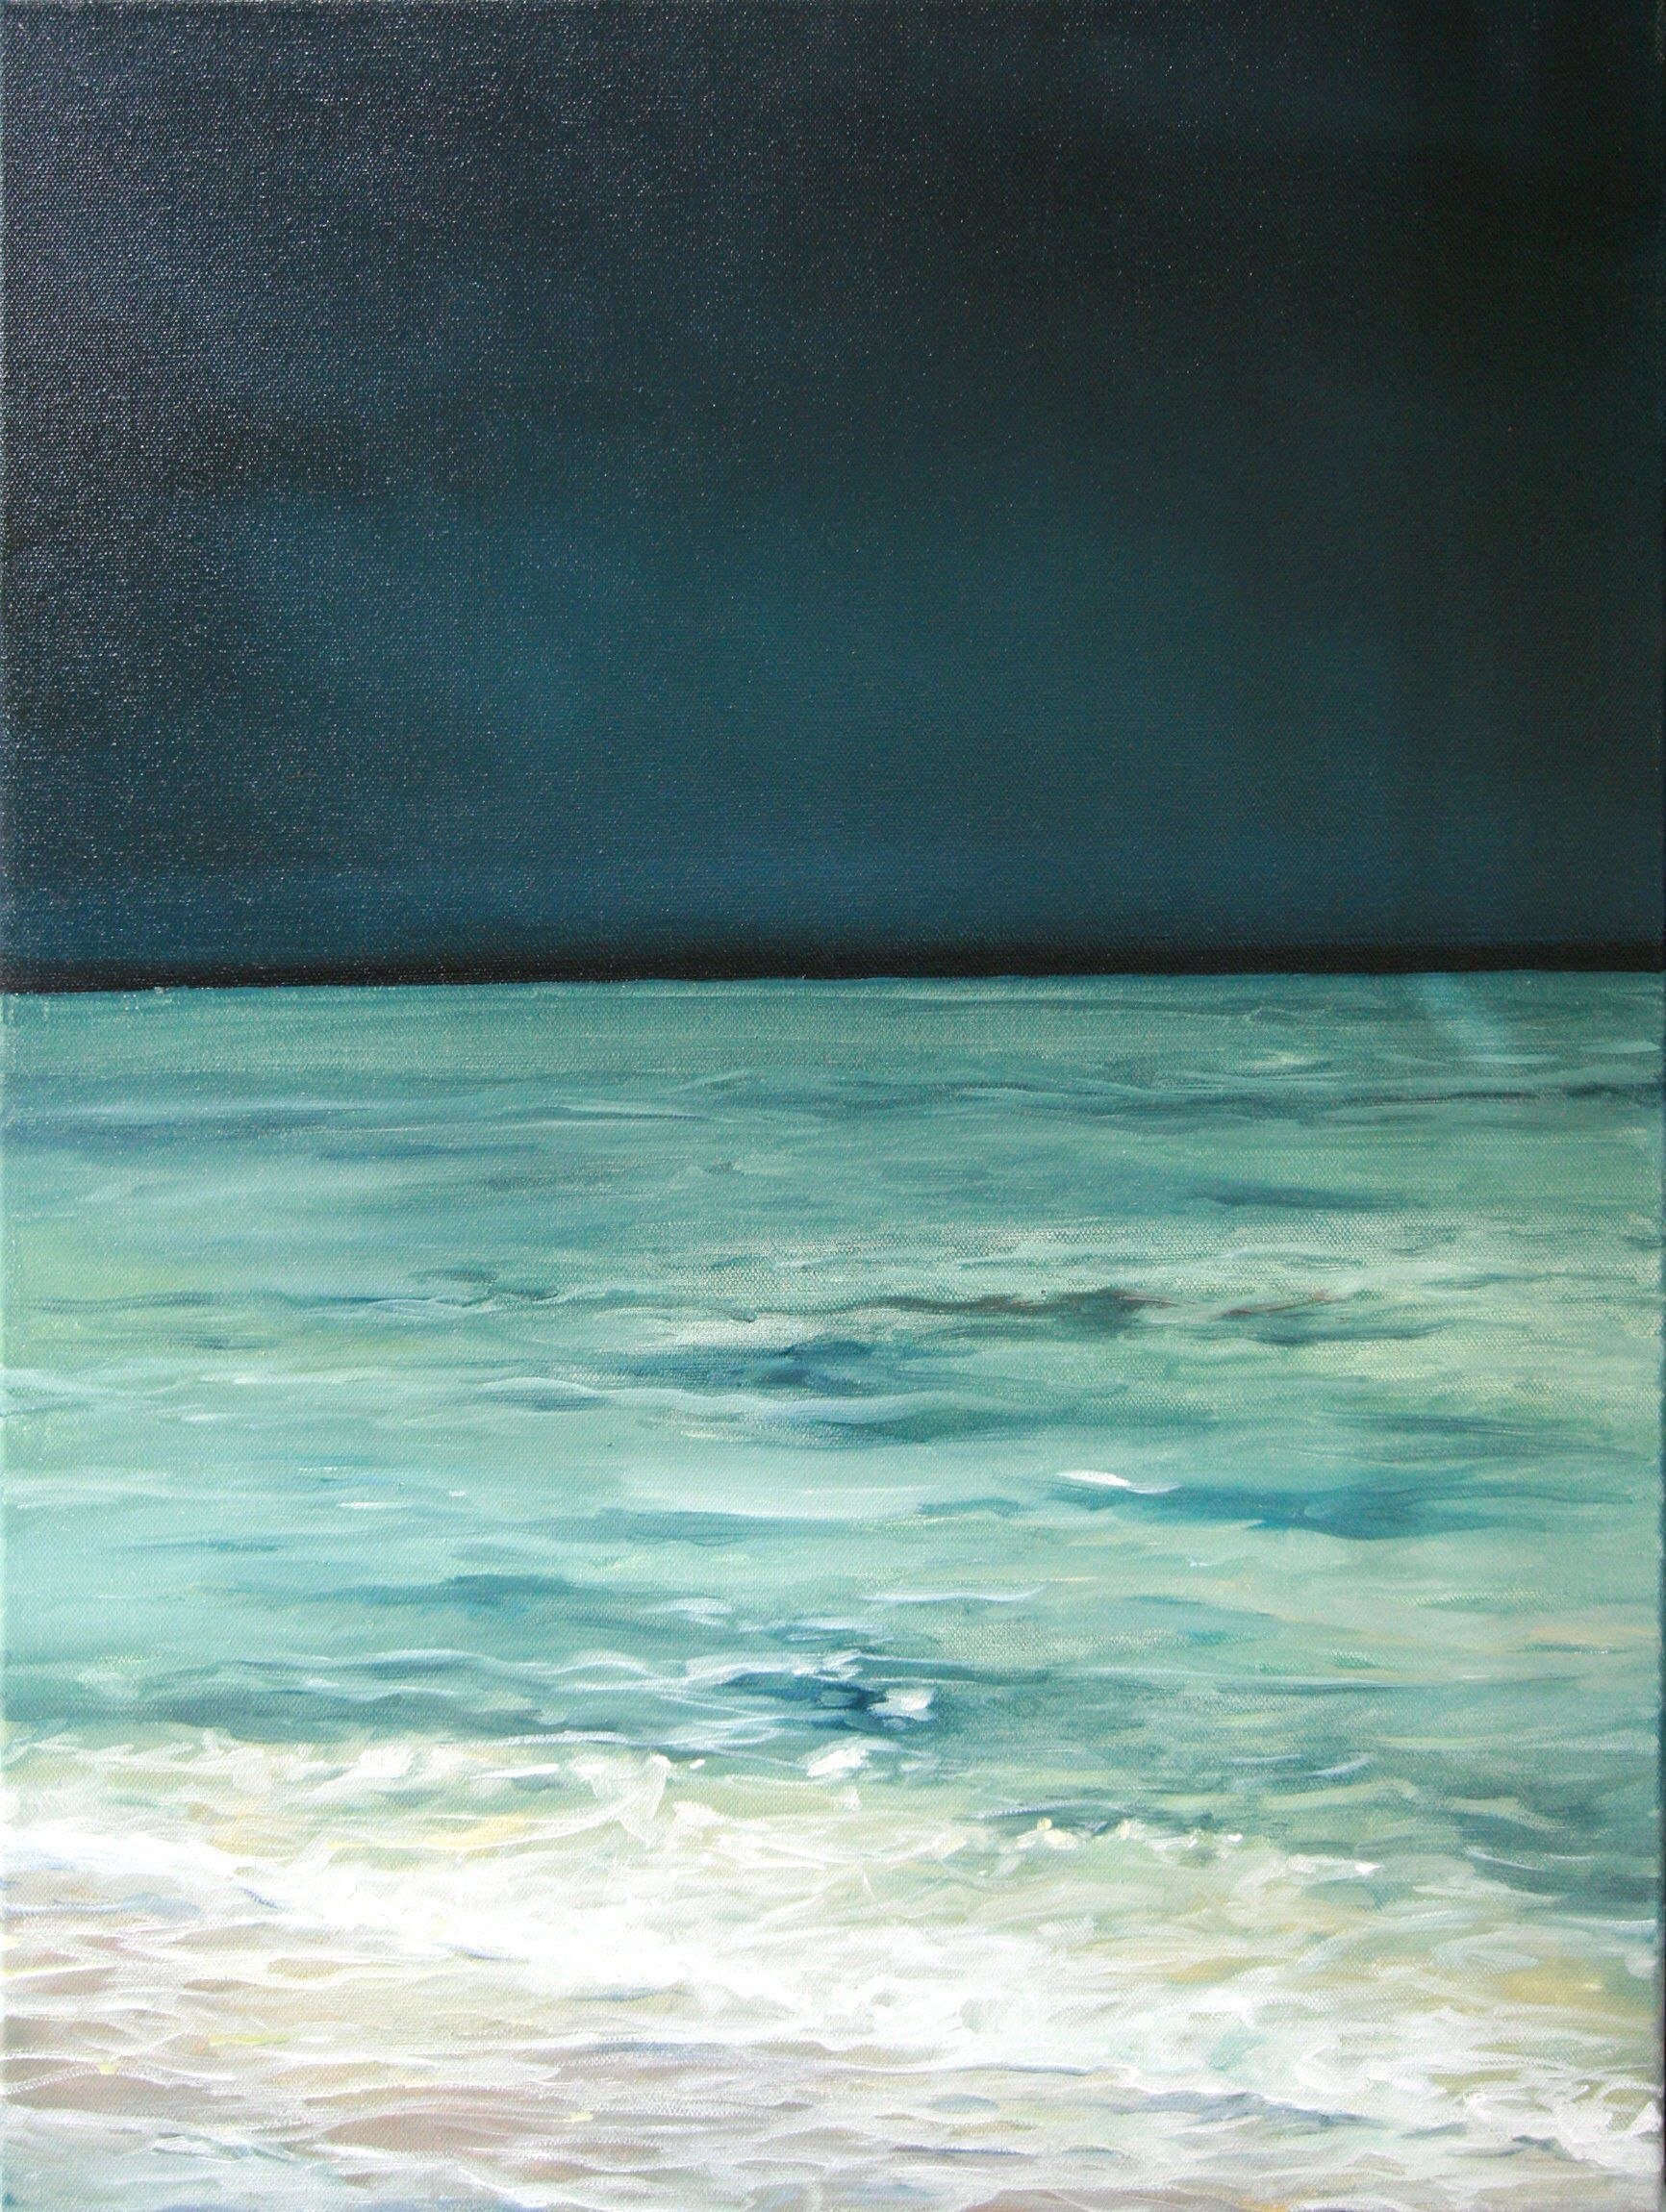 Before The Storm Seascape Landscape Ocean Painting Original Oil Painting Beach Painting 24x18 By Wiol Beach Painting Ocean Painting Original Oil Painting